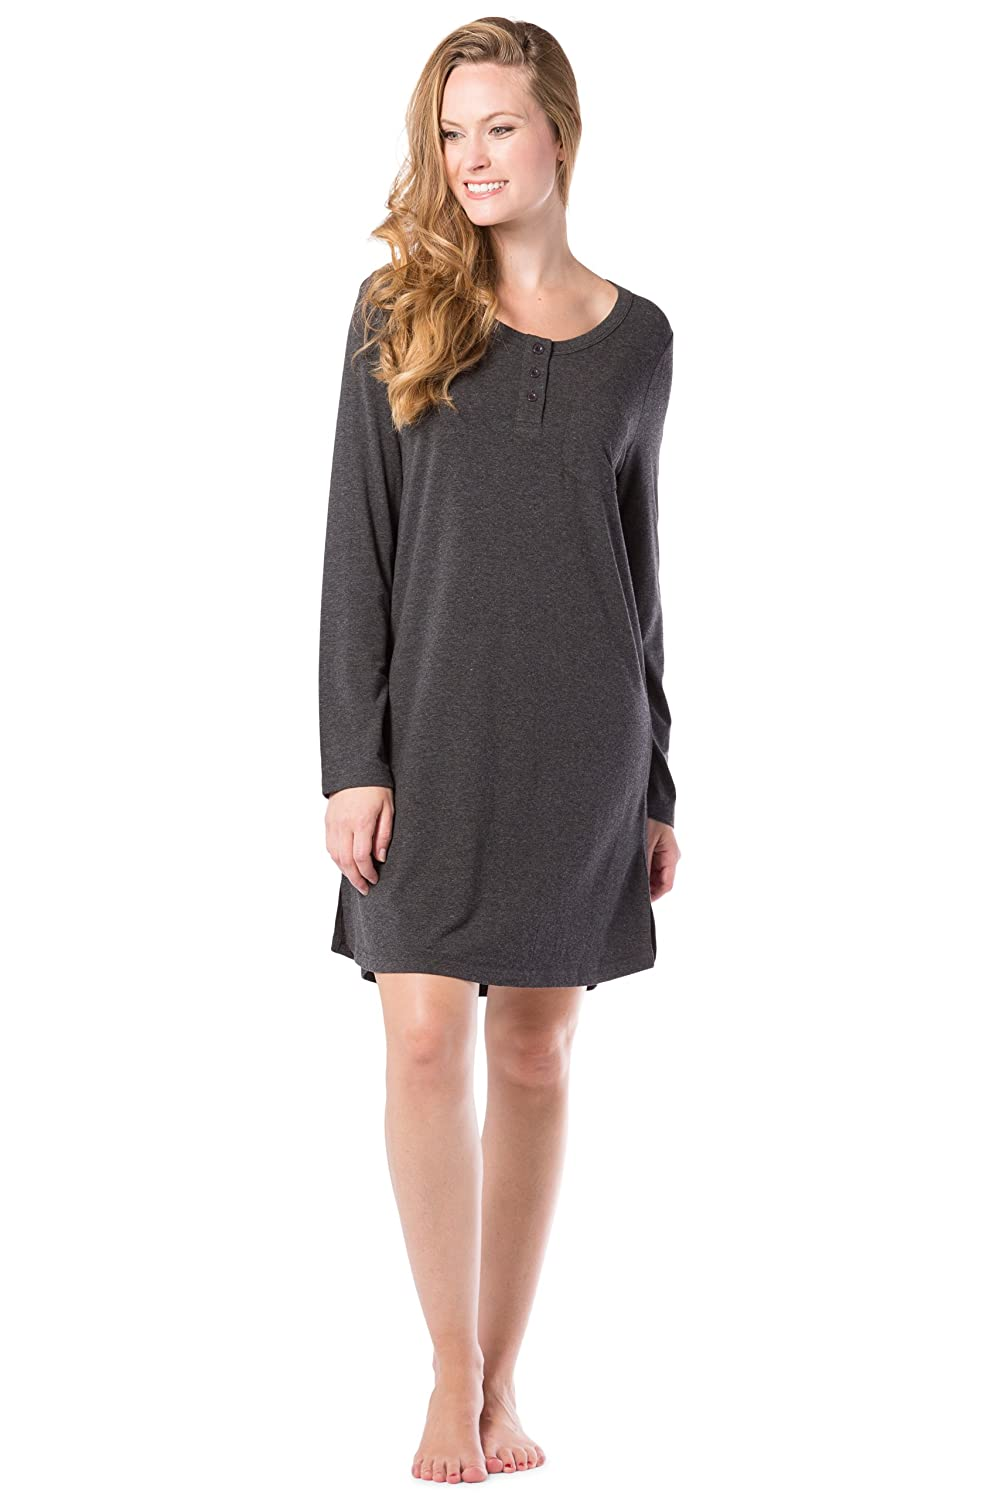 Fishers Finery Women s Ecofabric Henley Nightshirt  Long Sleeve  Above Knee  at Amazon Women s Clothing store  0a69bb993